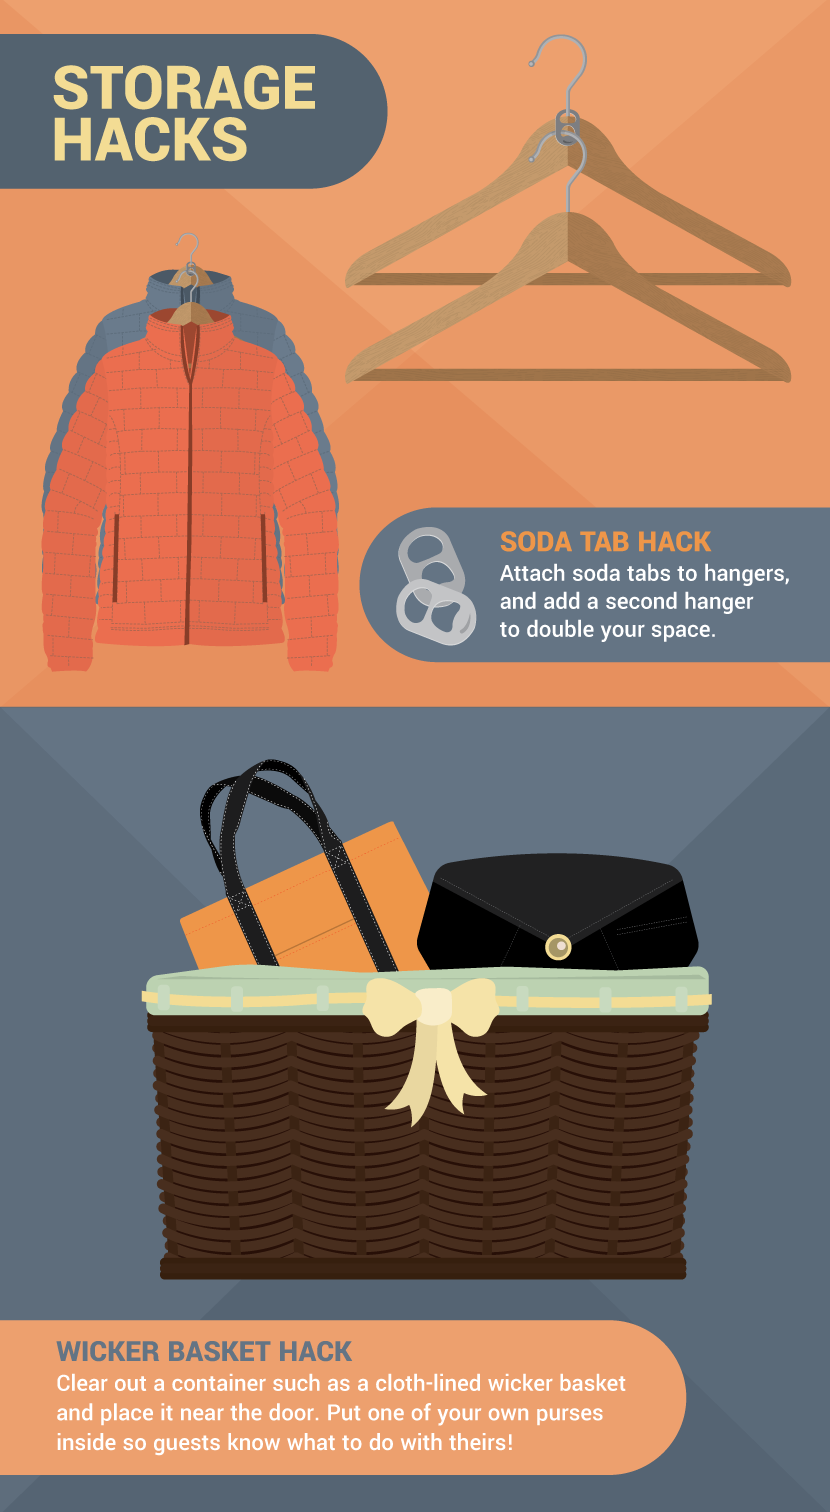 Storage Hacks For a Party